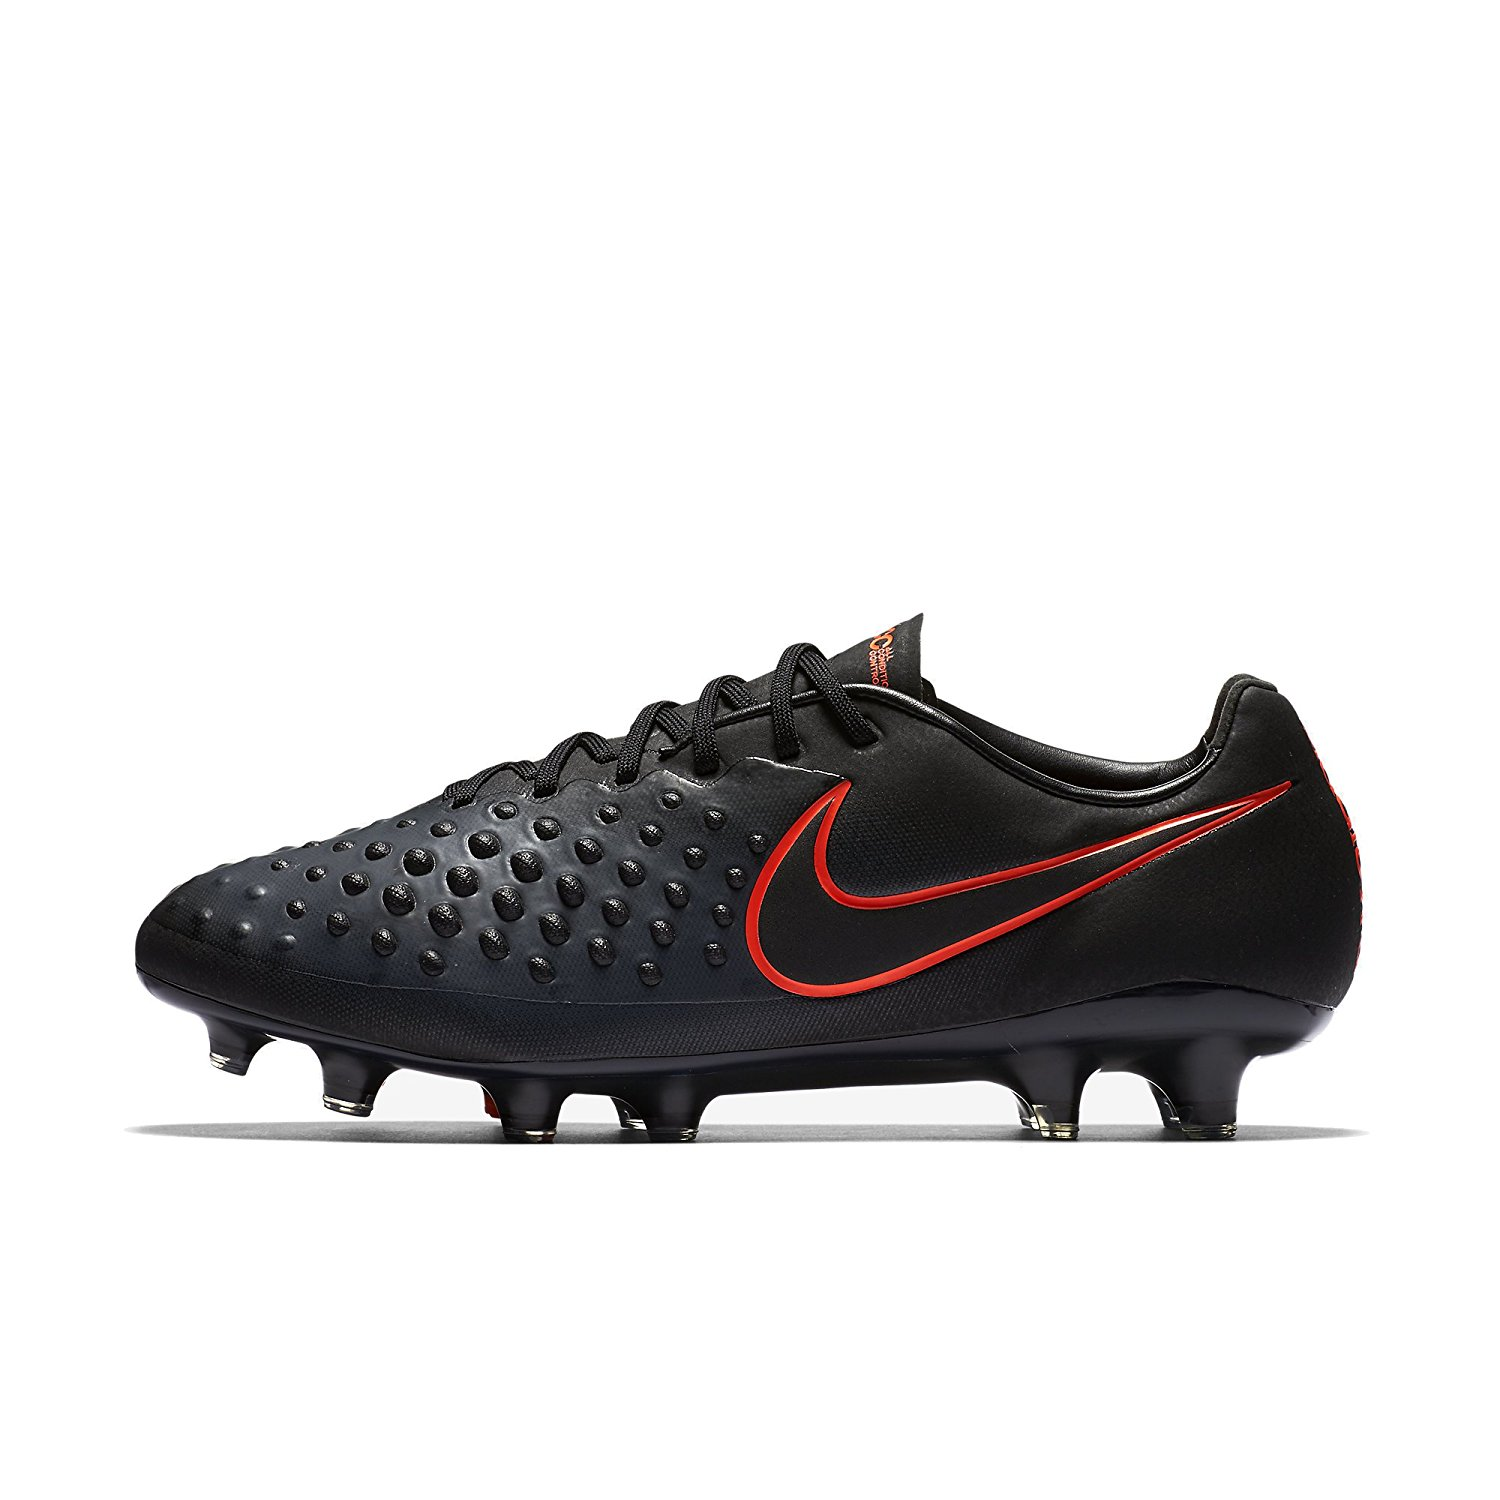 new product eee16 3f680 Get Quotations · Nike Men s Magista Opus II FG Soccer Cleats